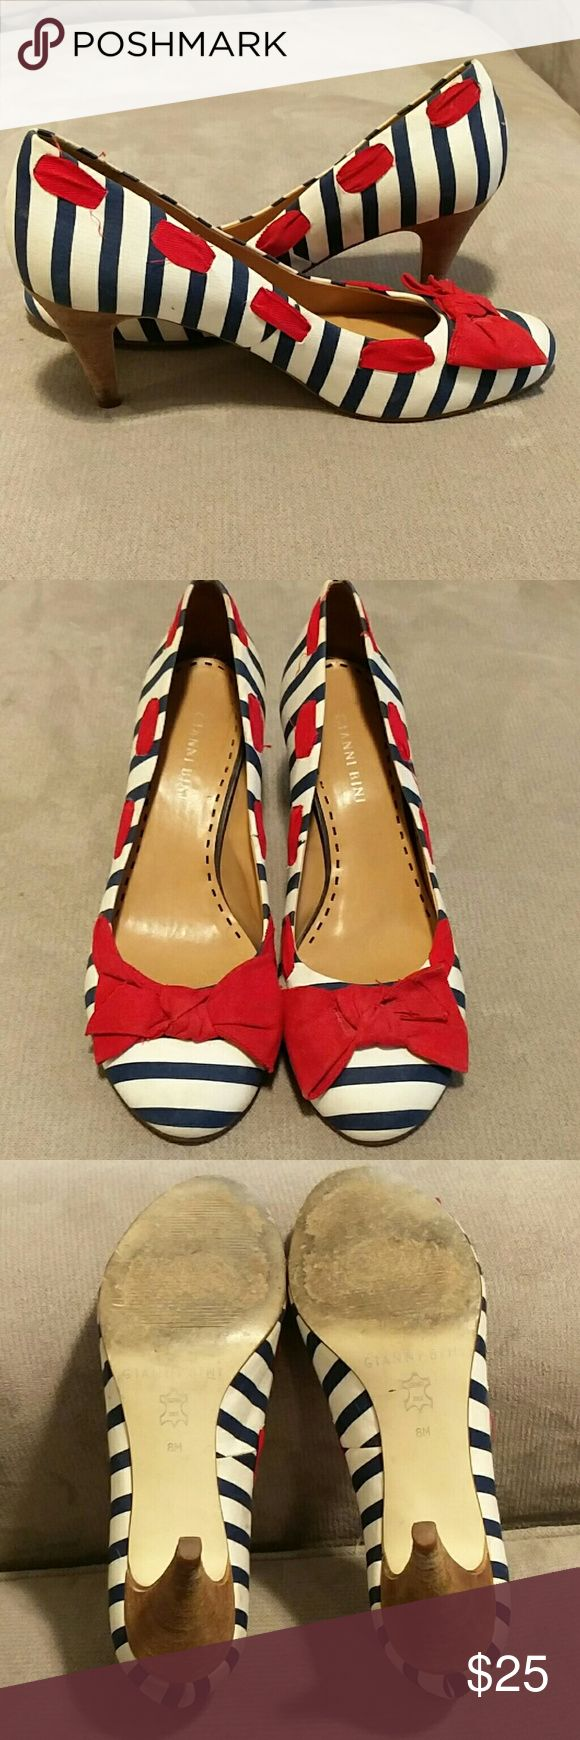 Gianni Bini nautical pumps Adorable little blue and white striped heels with red bow. They are used with signs of wear, but over all in good shape. The white is a little dirty in spots, but still looks white. Gianni Bini Shoes Heels